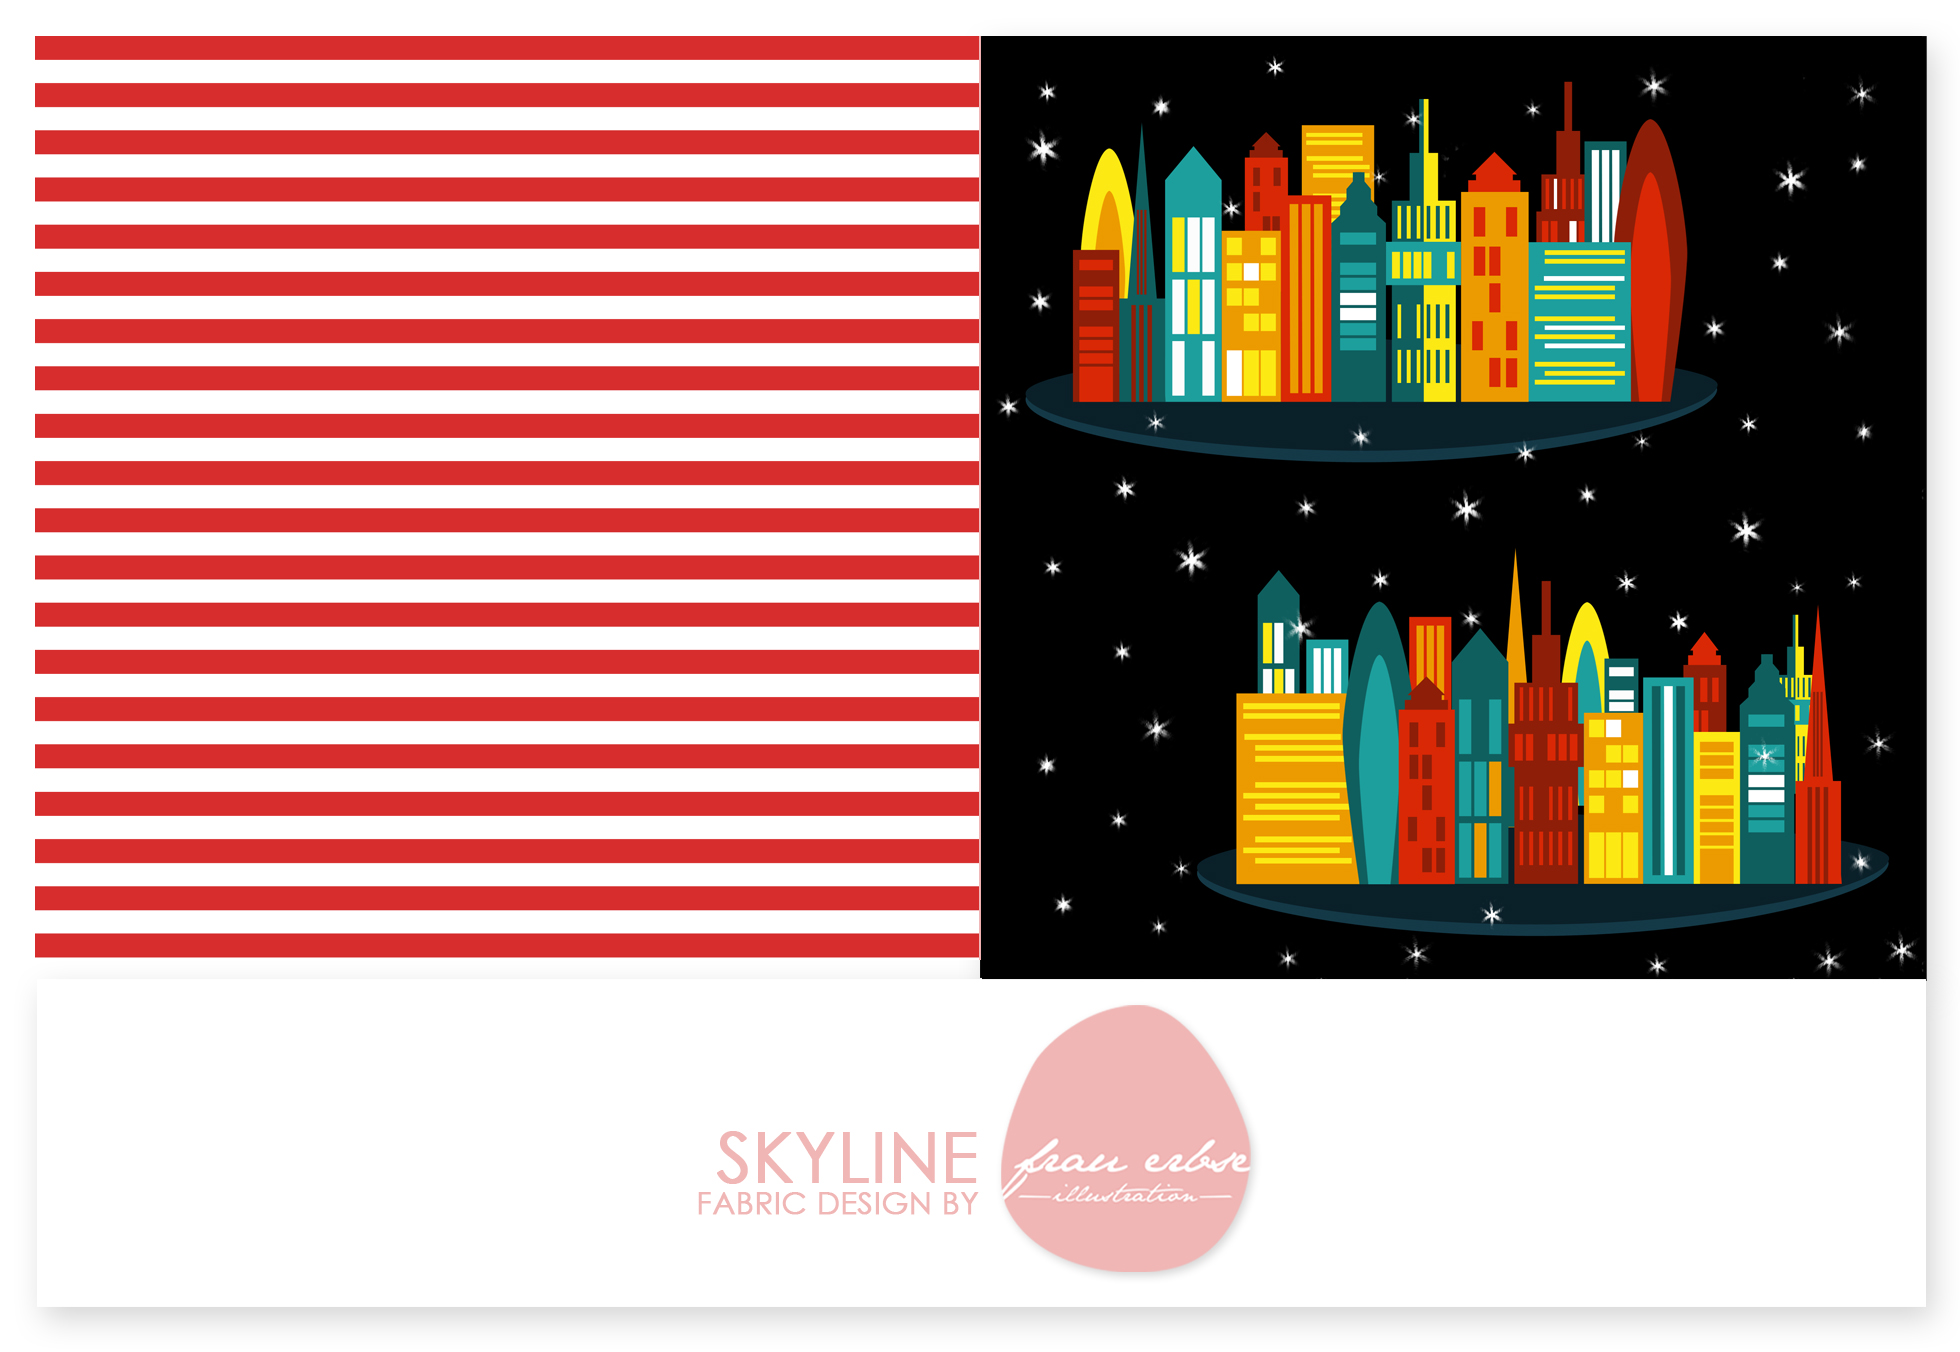 Stoffdesign Skyline